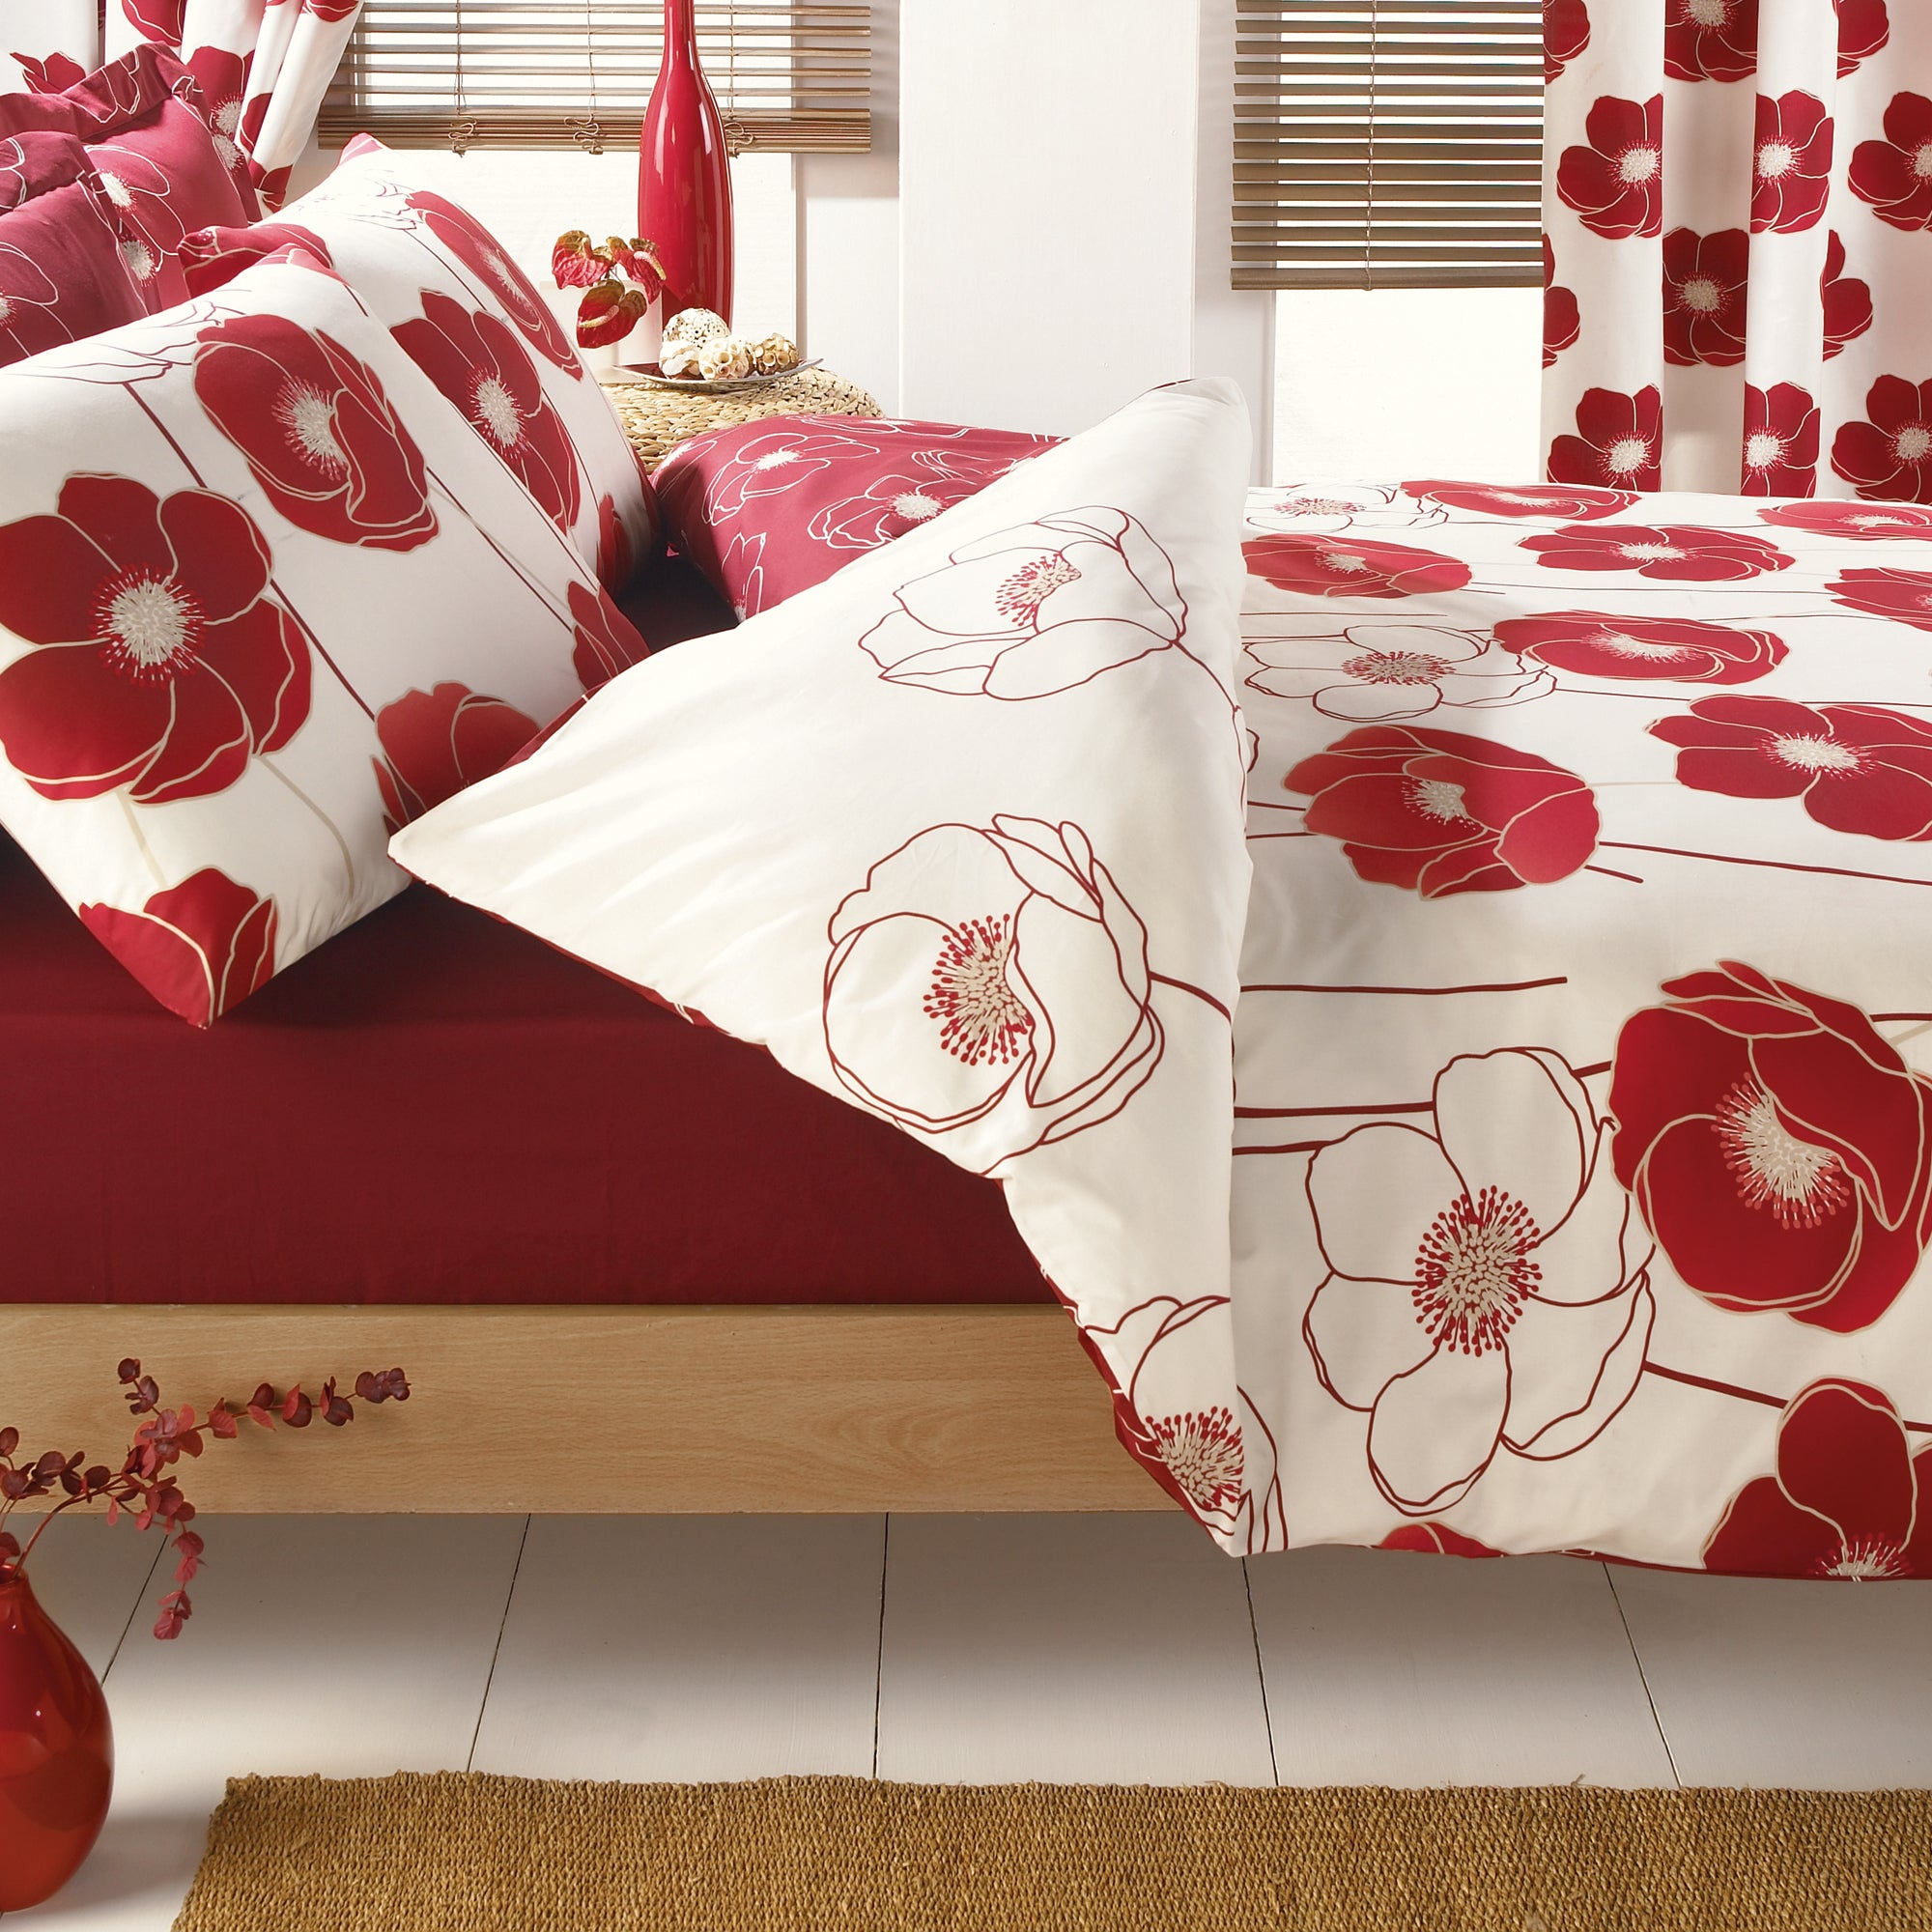 Red Poppy Collection Duvet Cover Set